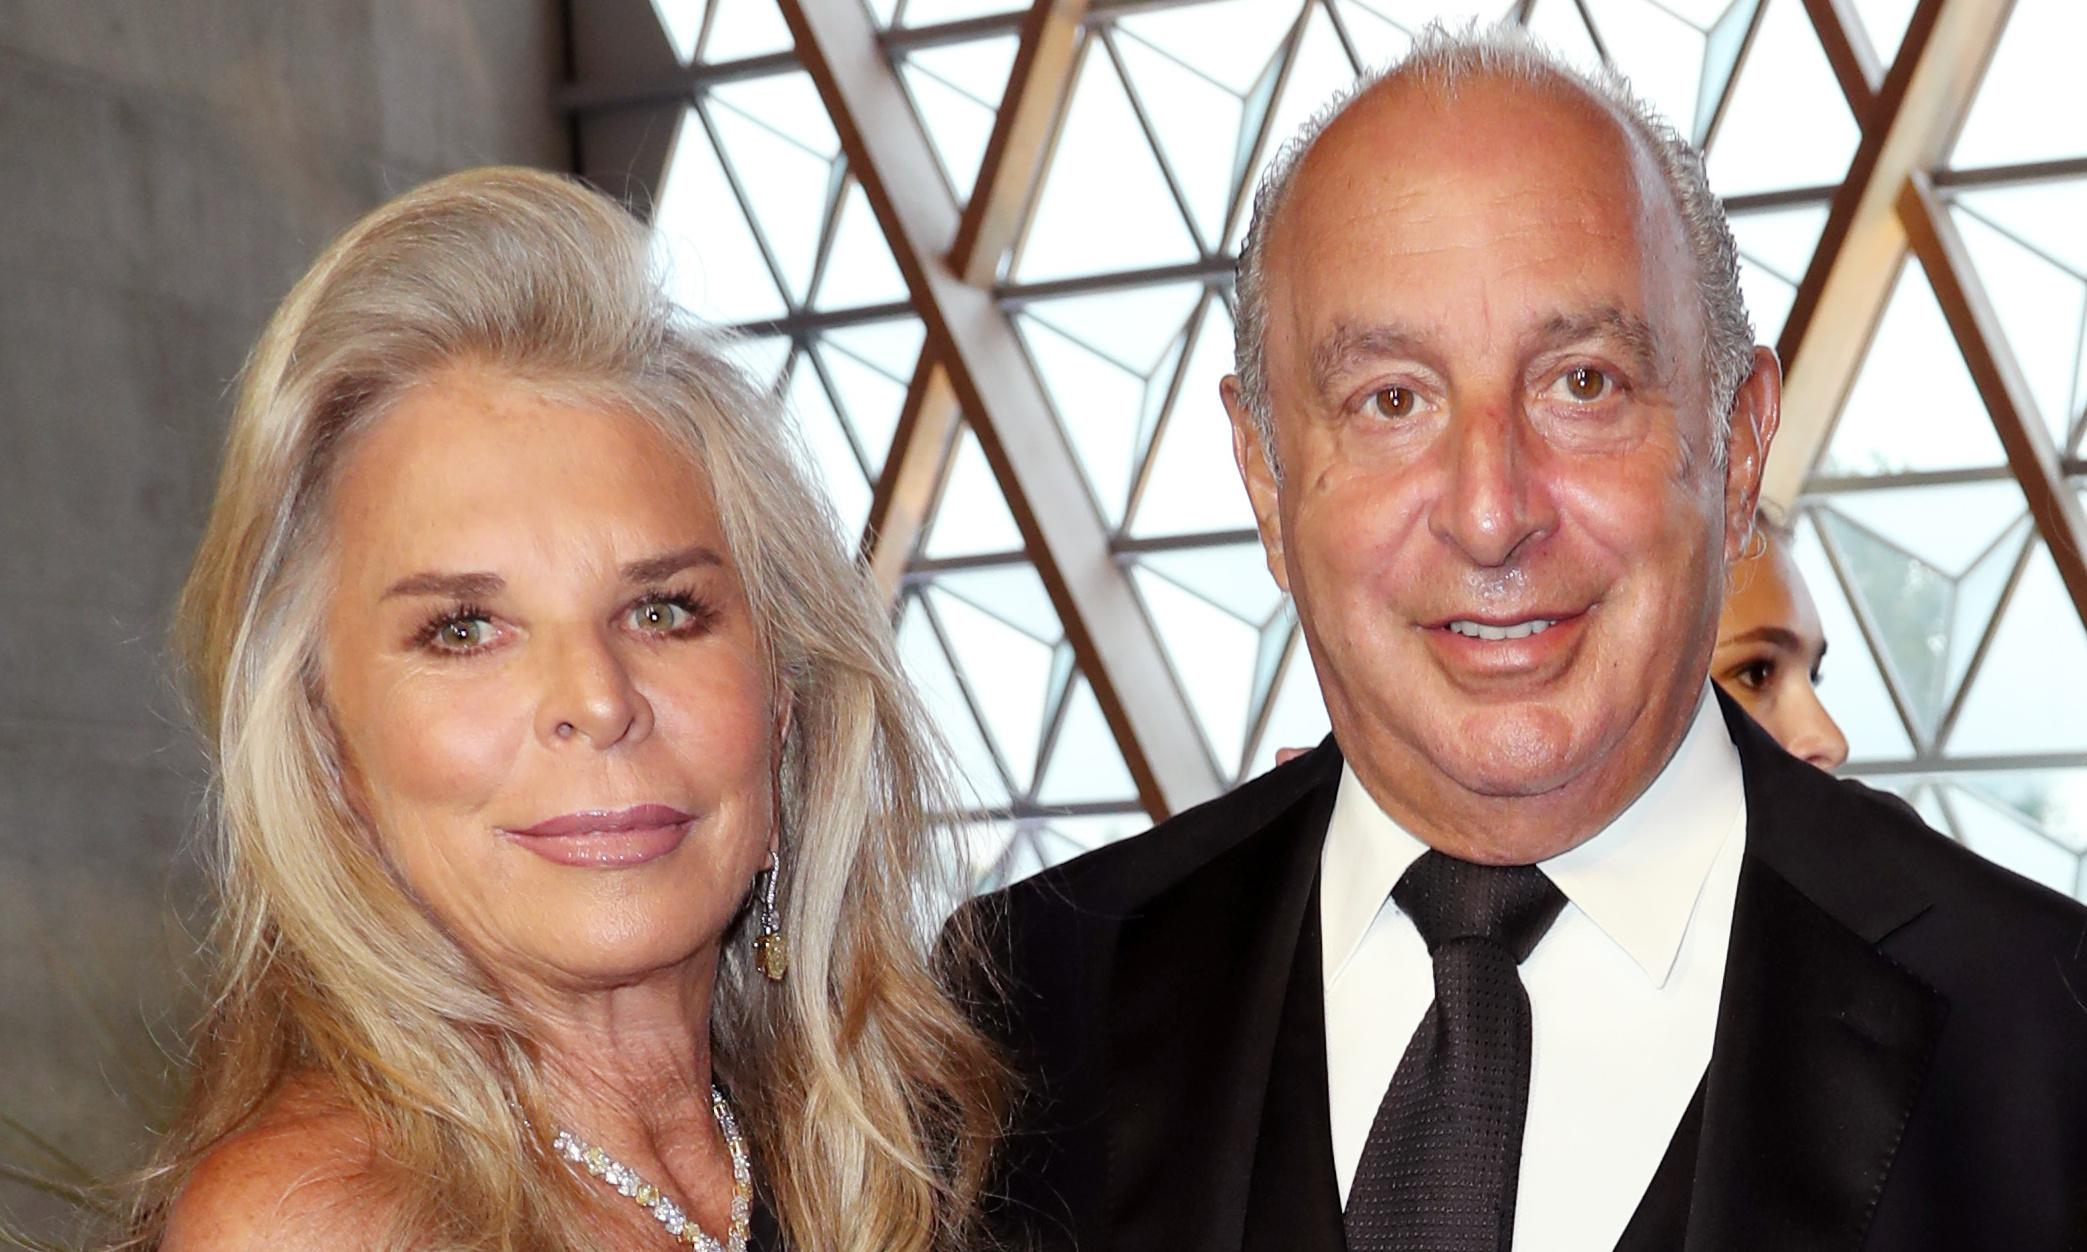 Does Philip Green think his offer stands a sporting chance?